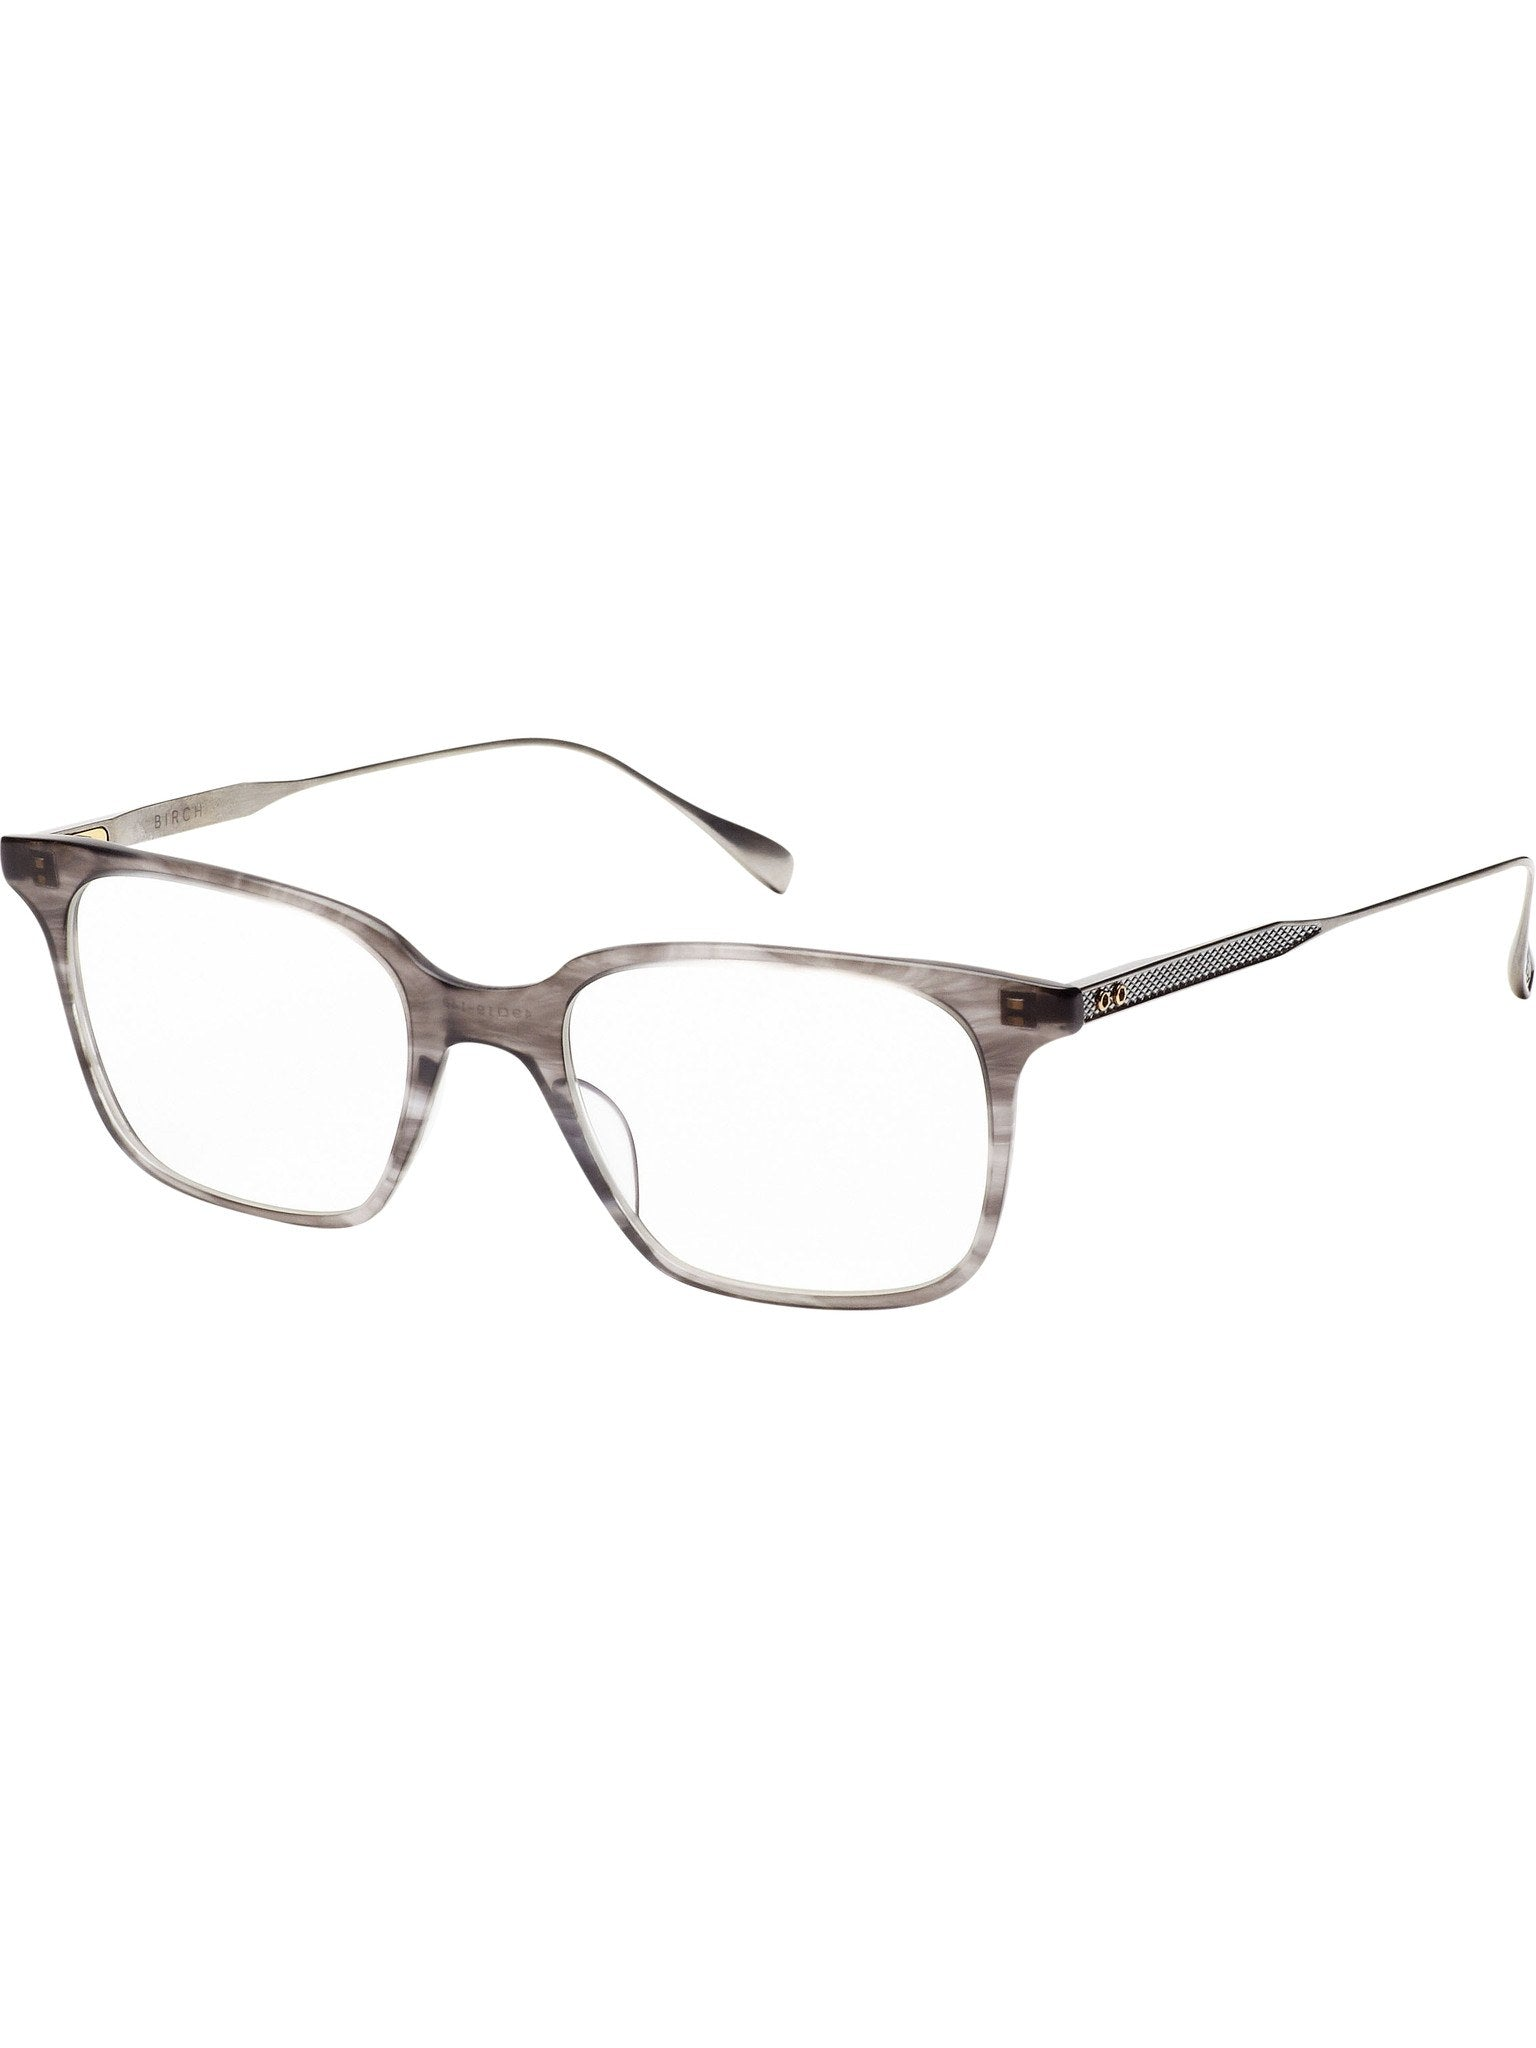 Optical Frame - Dita Birch DRX-2074-C Glasses